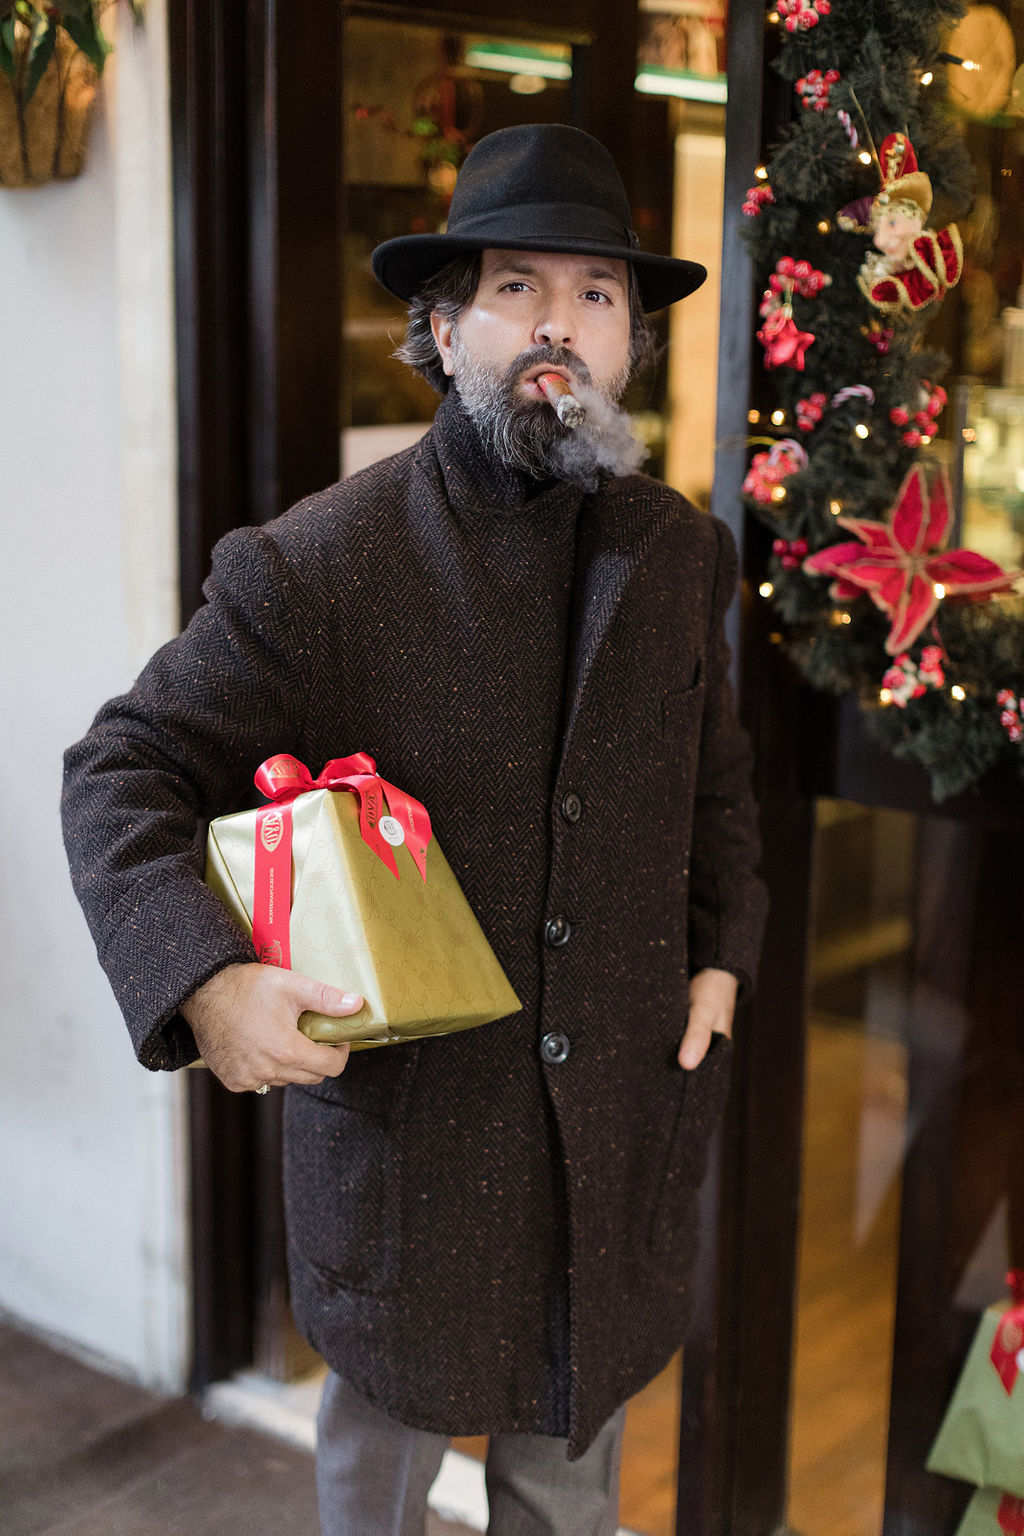 Christmas shopping man holding panettone and wearing coat and fedora hat smoking cigar